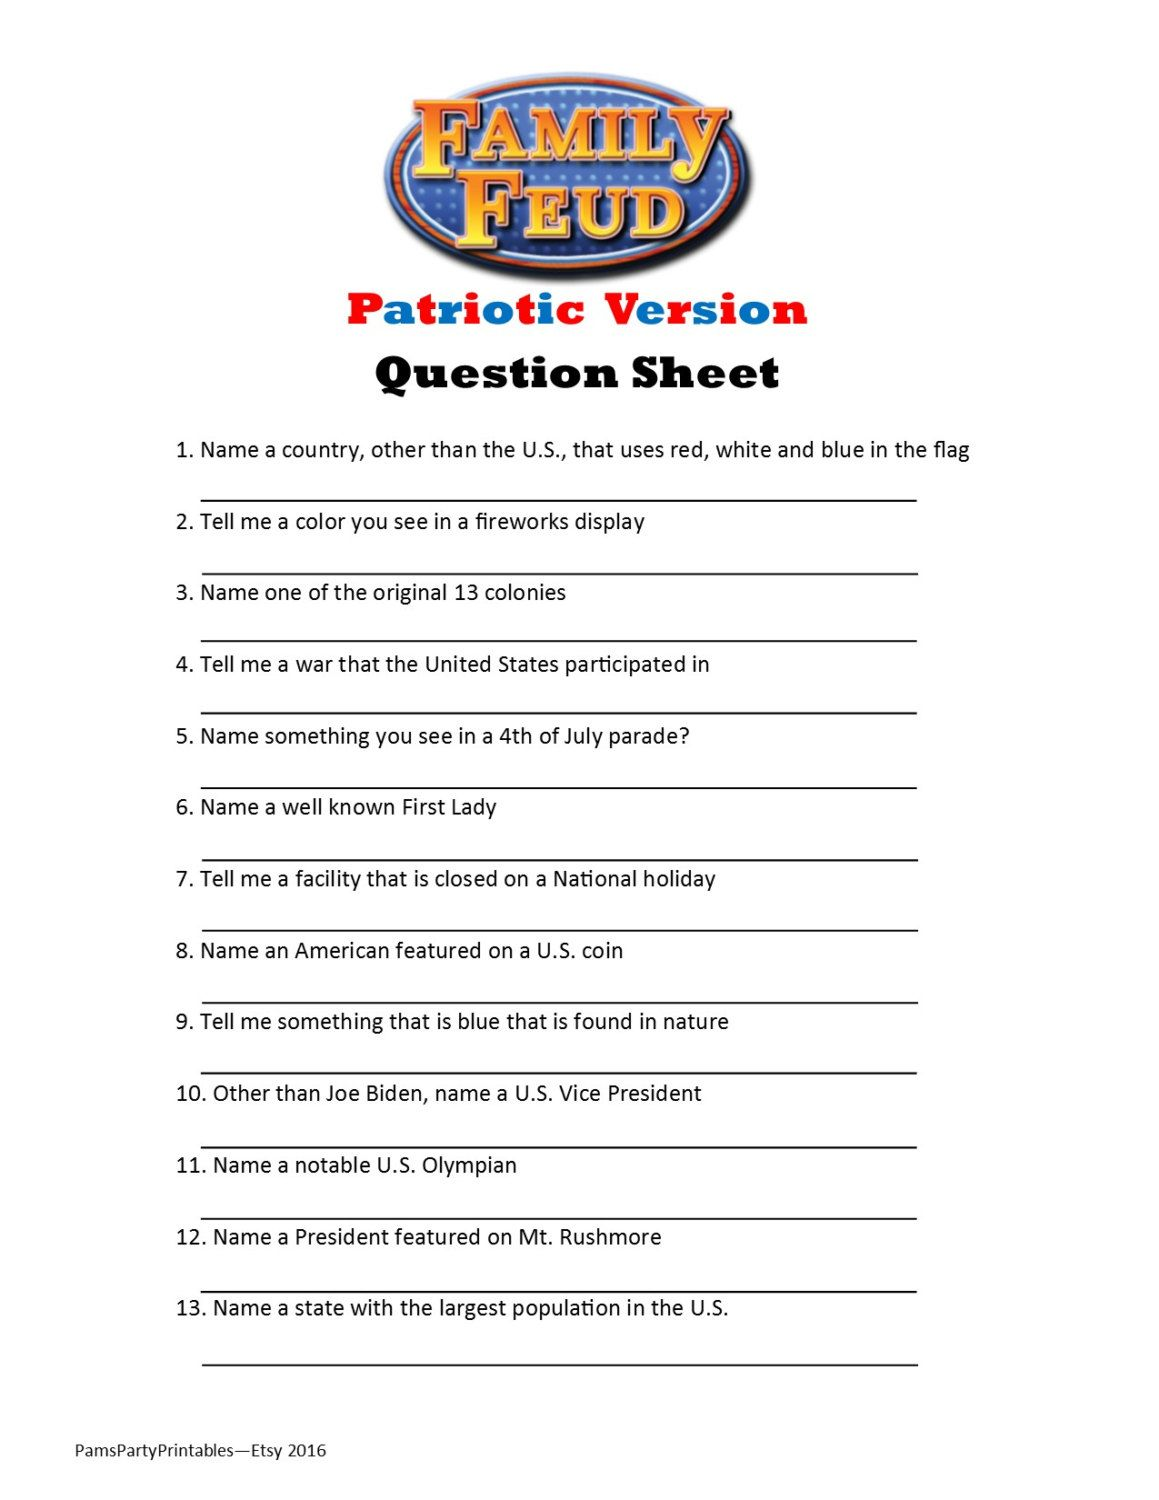 Printable Patriotic Family Feud Game Question Sheet